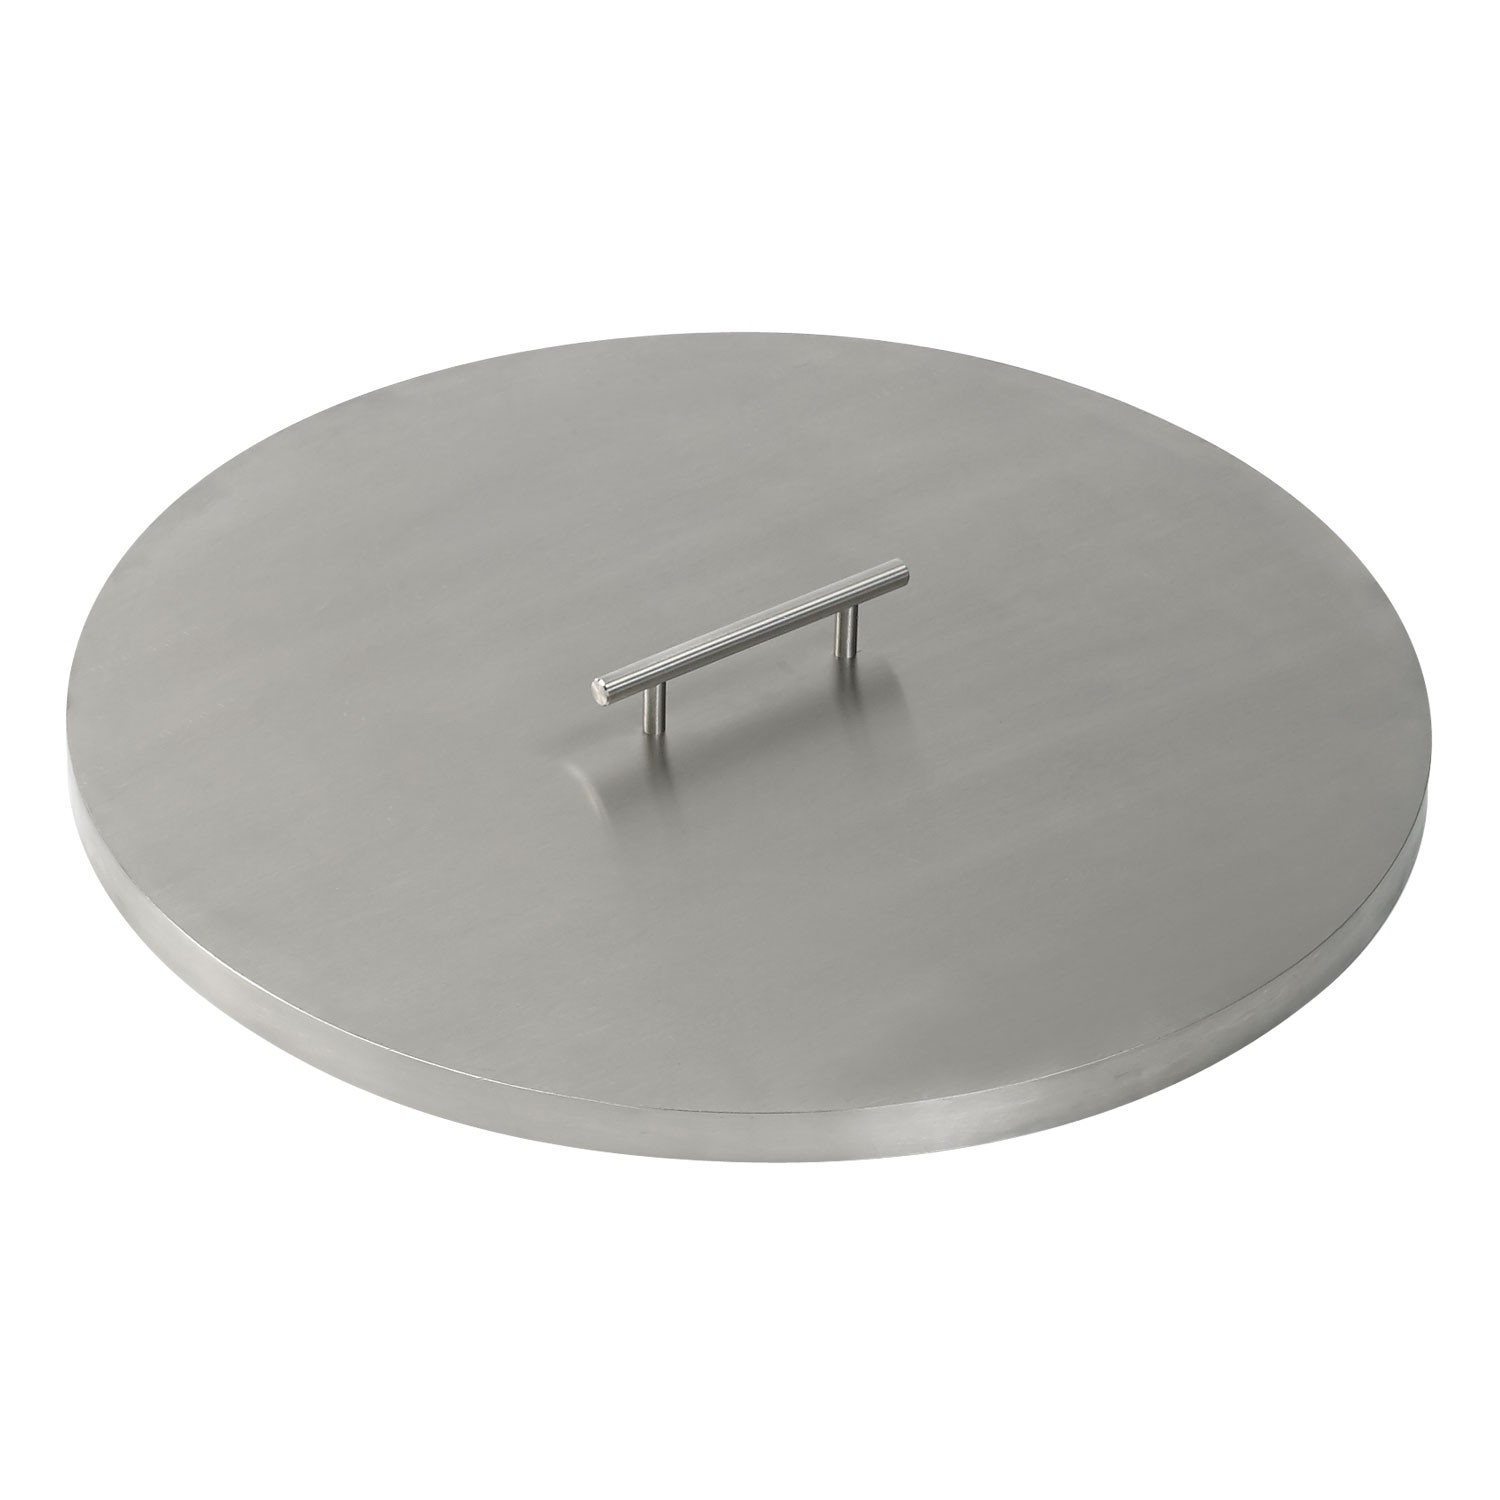 Round Metal Fire Pit Cover Stainless Steel Fire Pit Lid throughout dimensions 1500 X 1500